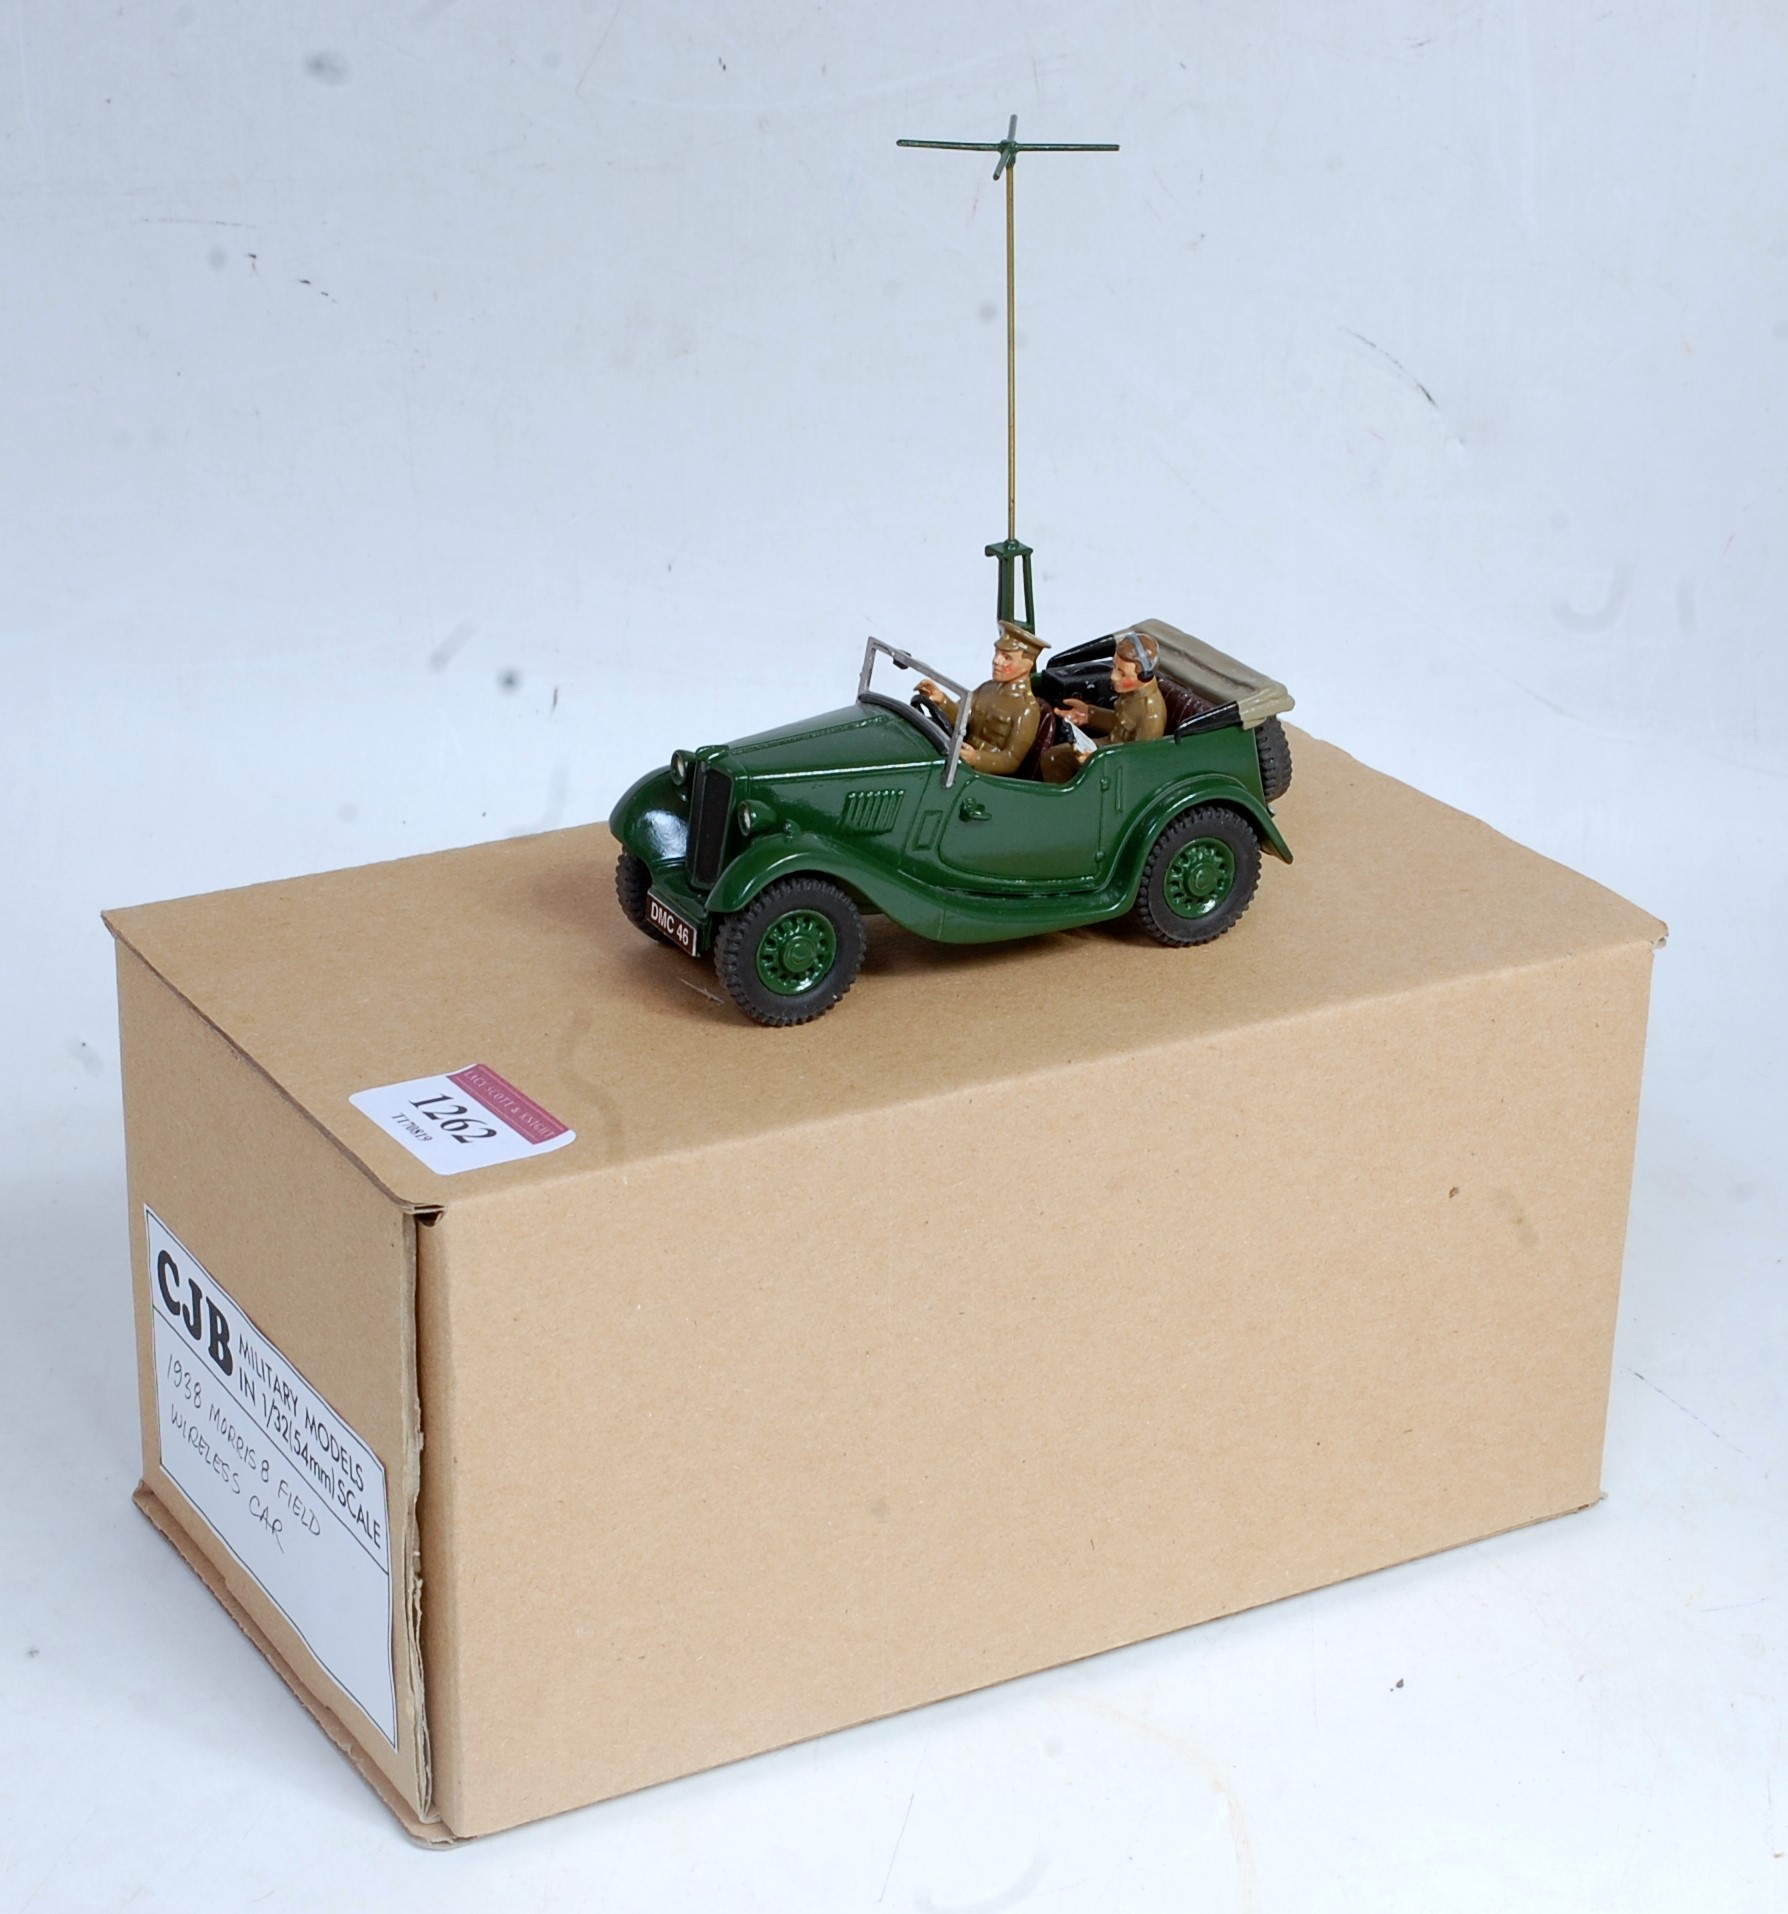 A CJB Military Models 1:32 scale white metal and resin hand crafted model of a 1938 Morris 8 Field